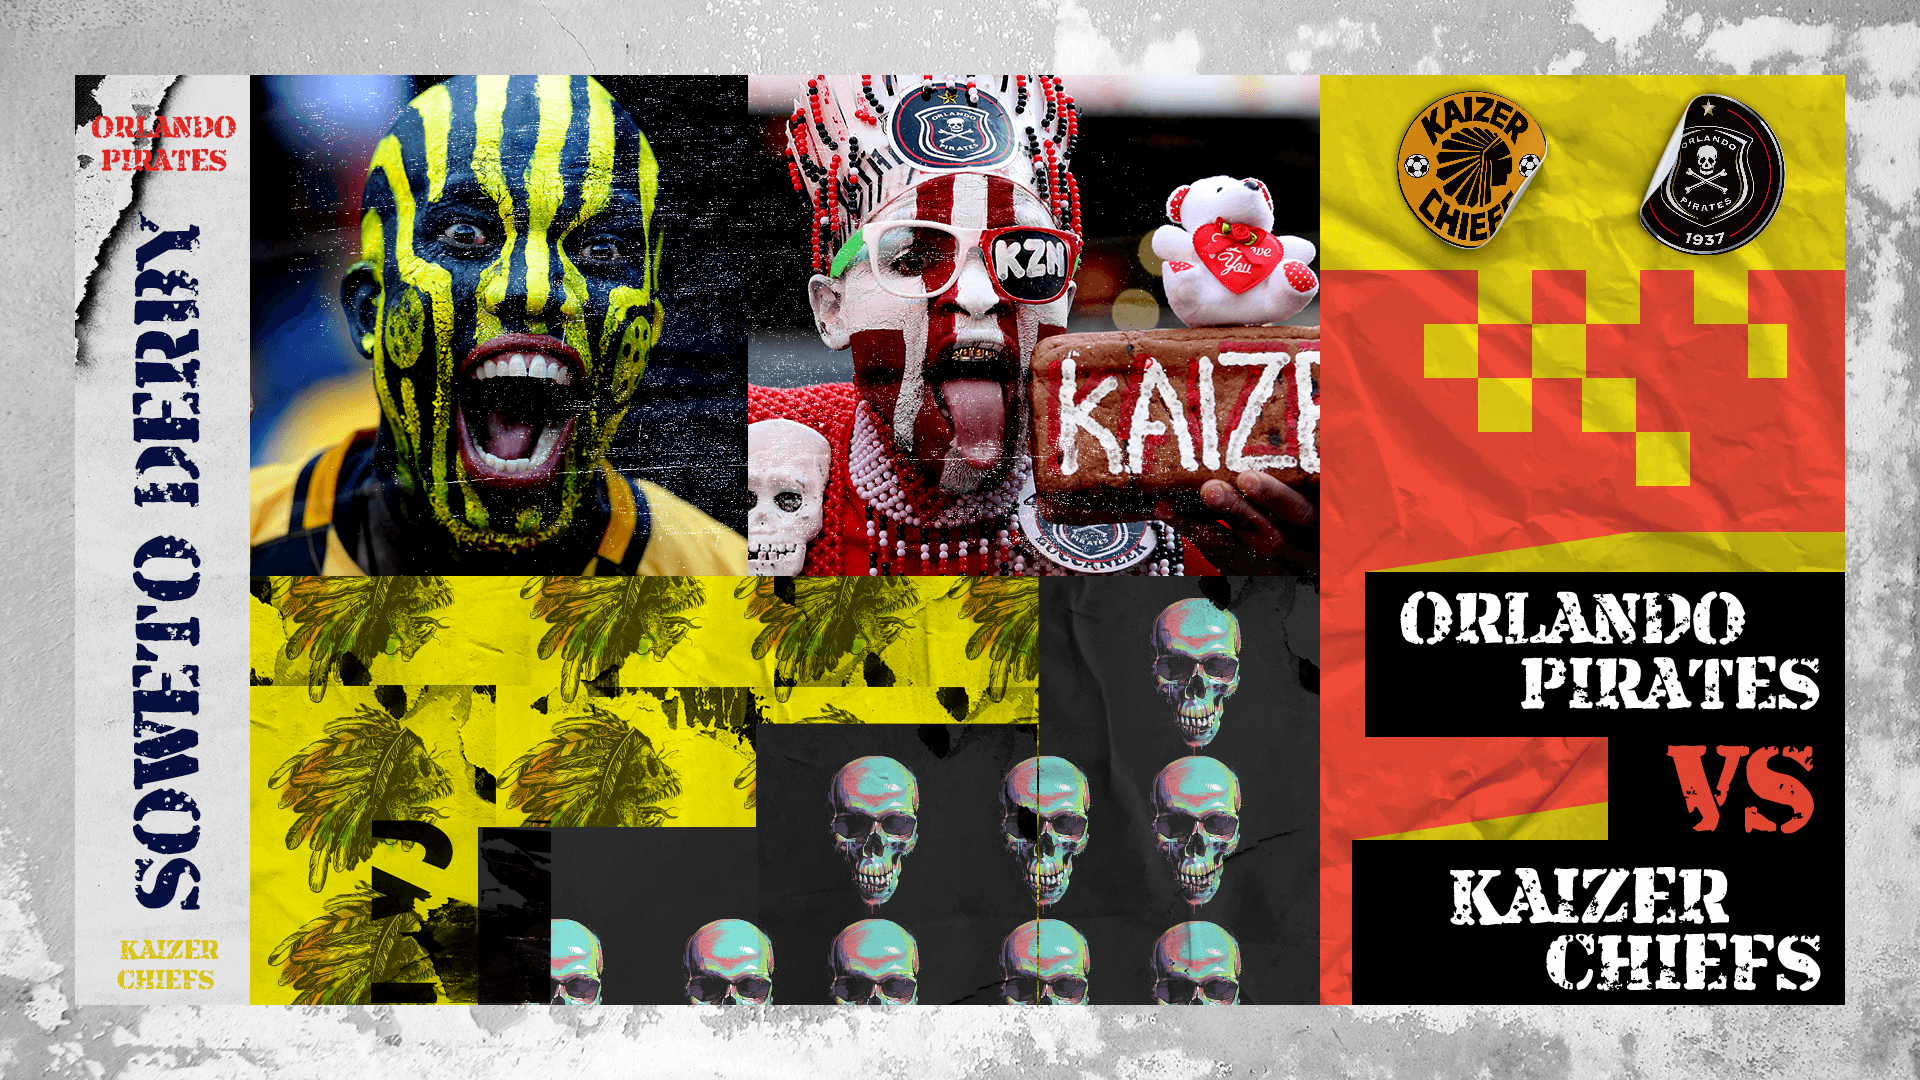 From Violence to Vuvuzelas: How the Soweto Derby unified fans - Goal.com